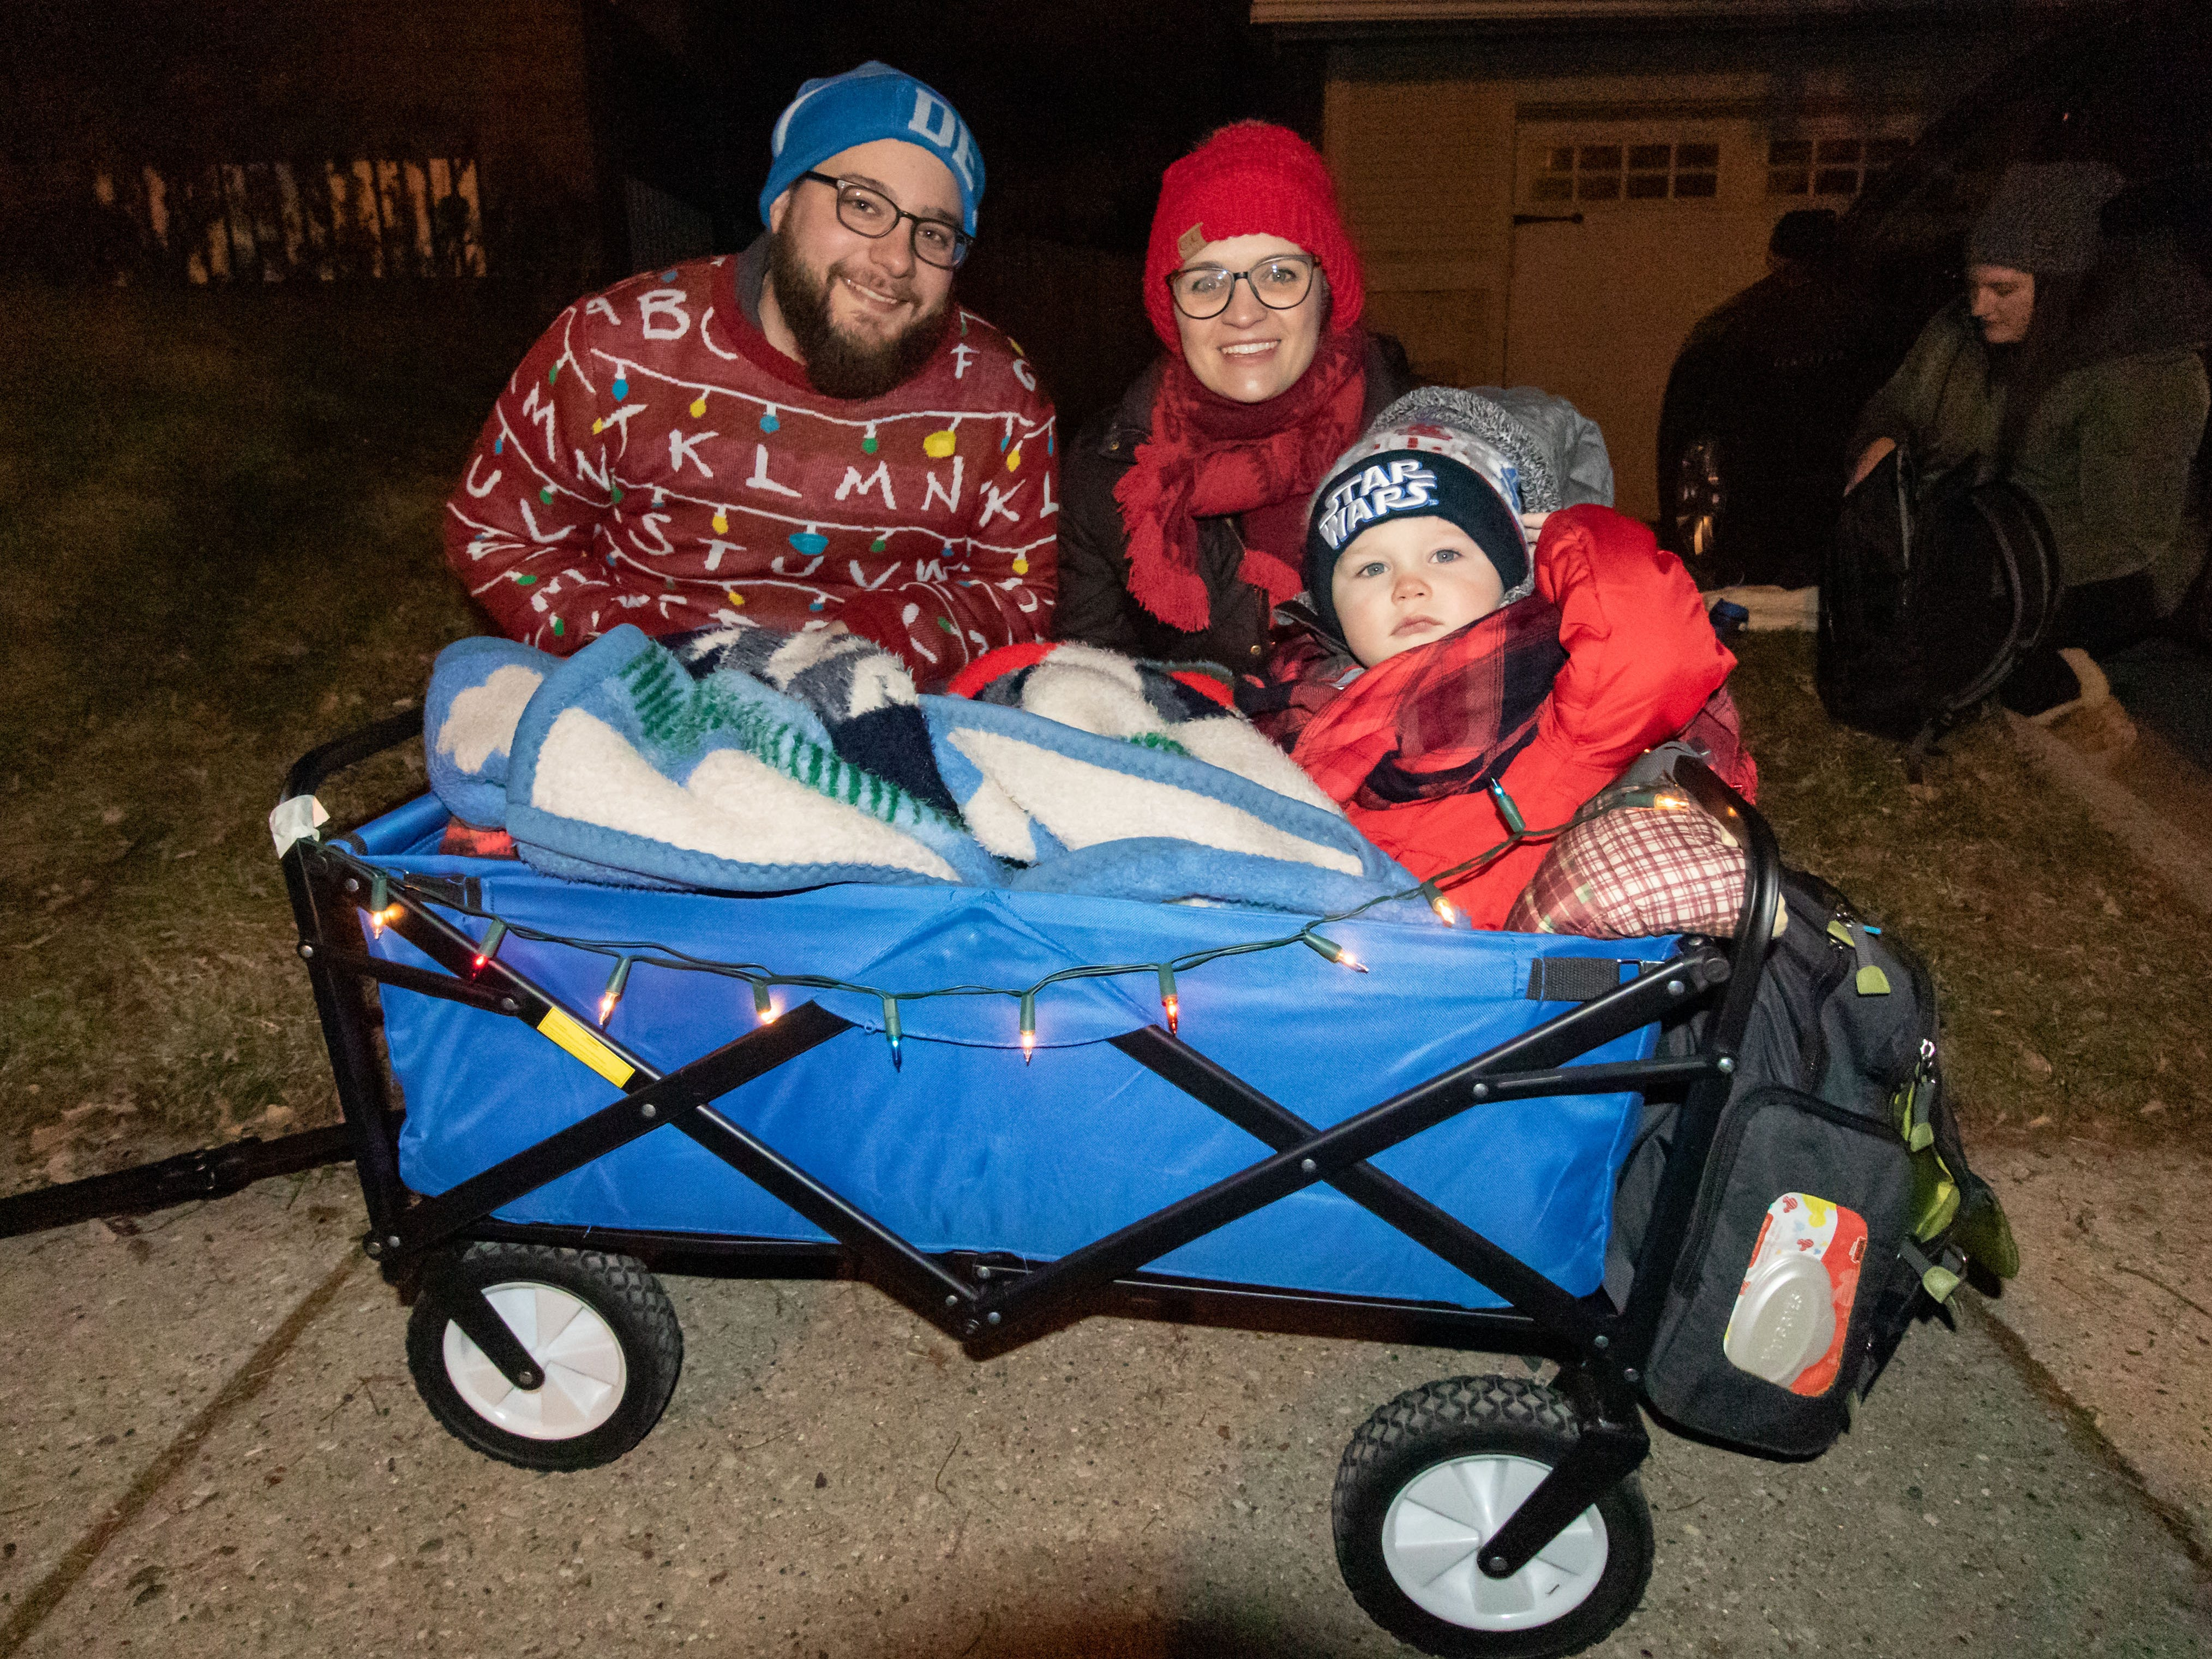 The Kern family from West Allis, Jason, Lisa and two-year-old son Arlo, came ready to sing during Tosa's 7th Annual Christmas Caroling Extravaganza on Saturday, Dec. 22, 2018. The objective of the event is to spread holiday cheer and warm the winter night with song and folly.